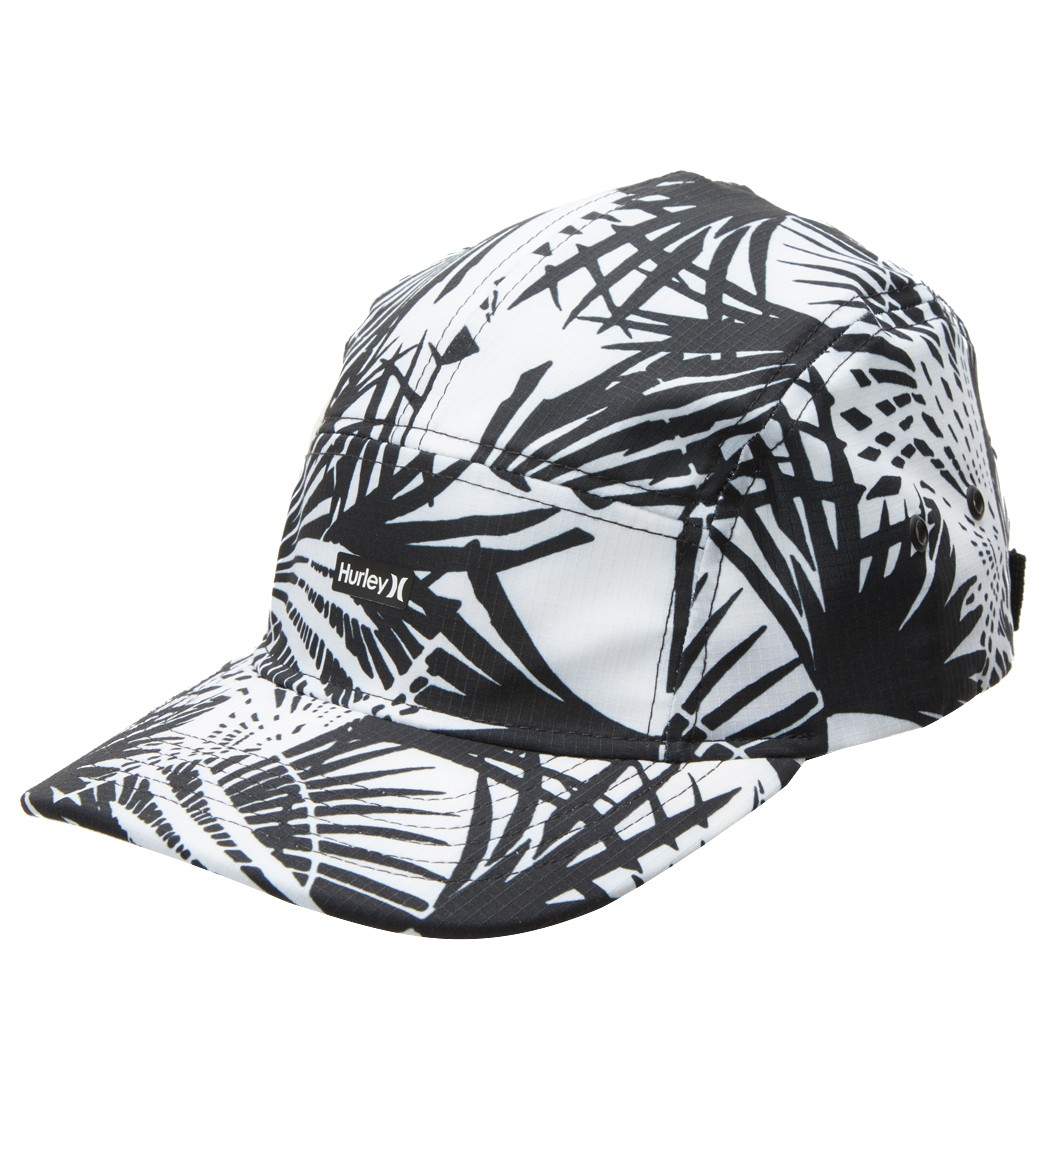 0d249221e1a Hurley Women s One and Only Palmer Hat at SwimOutlet.com